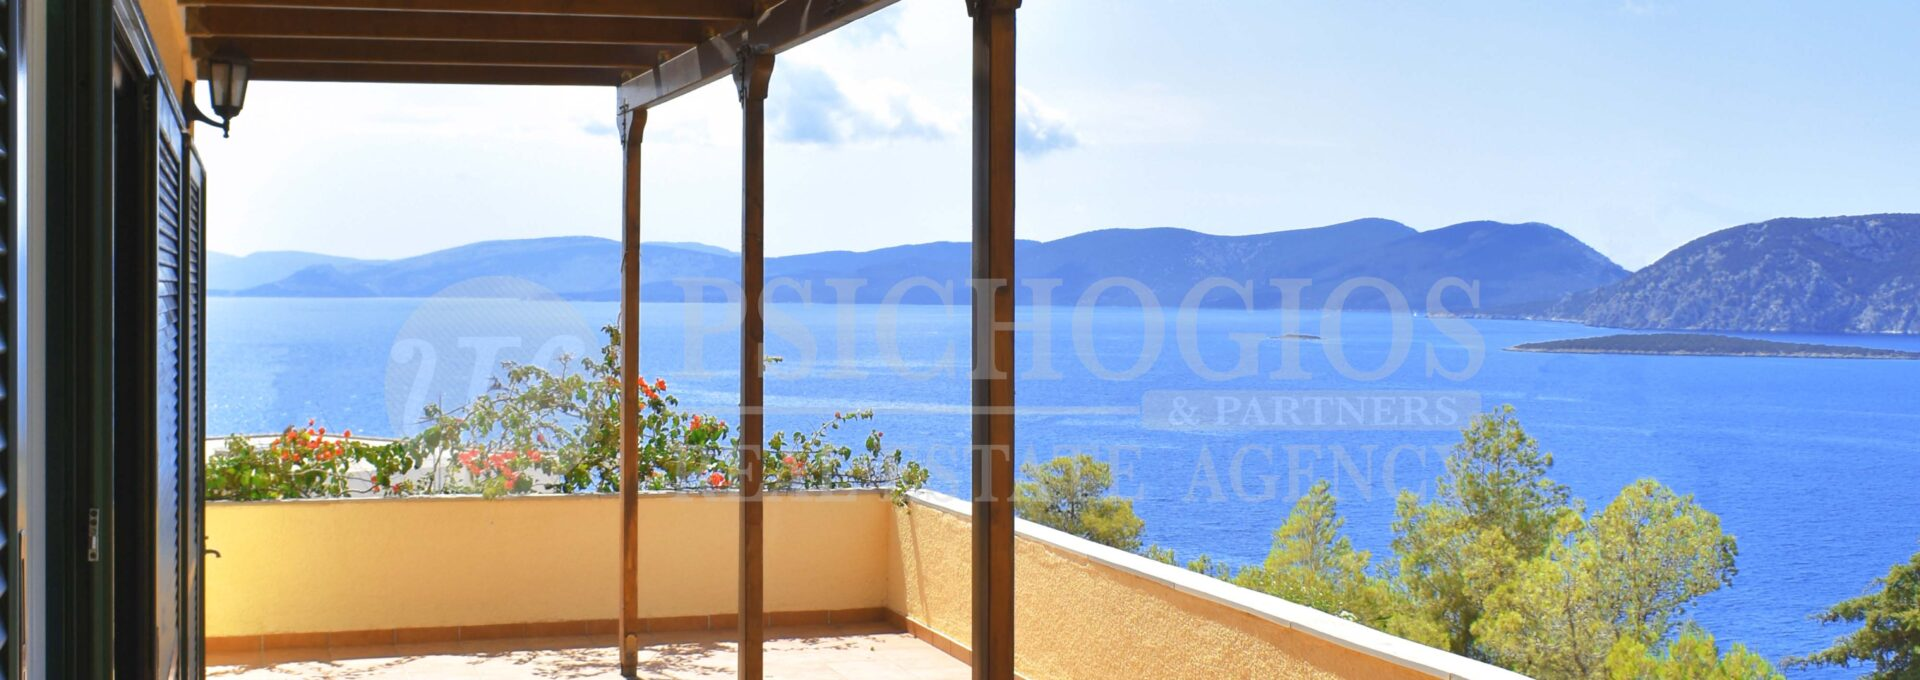 for_sale_house_223_square_meters_plot_730_square_meters_view_to_the_sea_ermioni_greece (49)